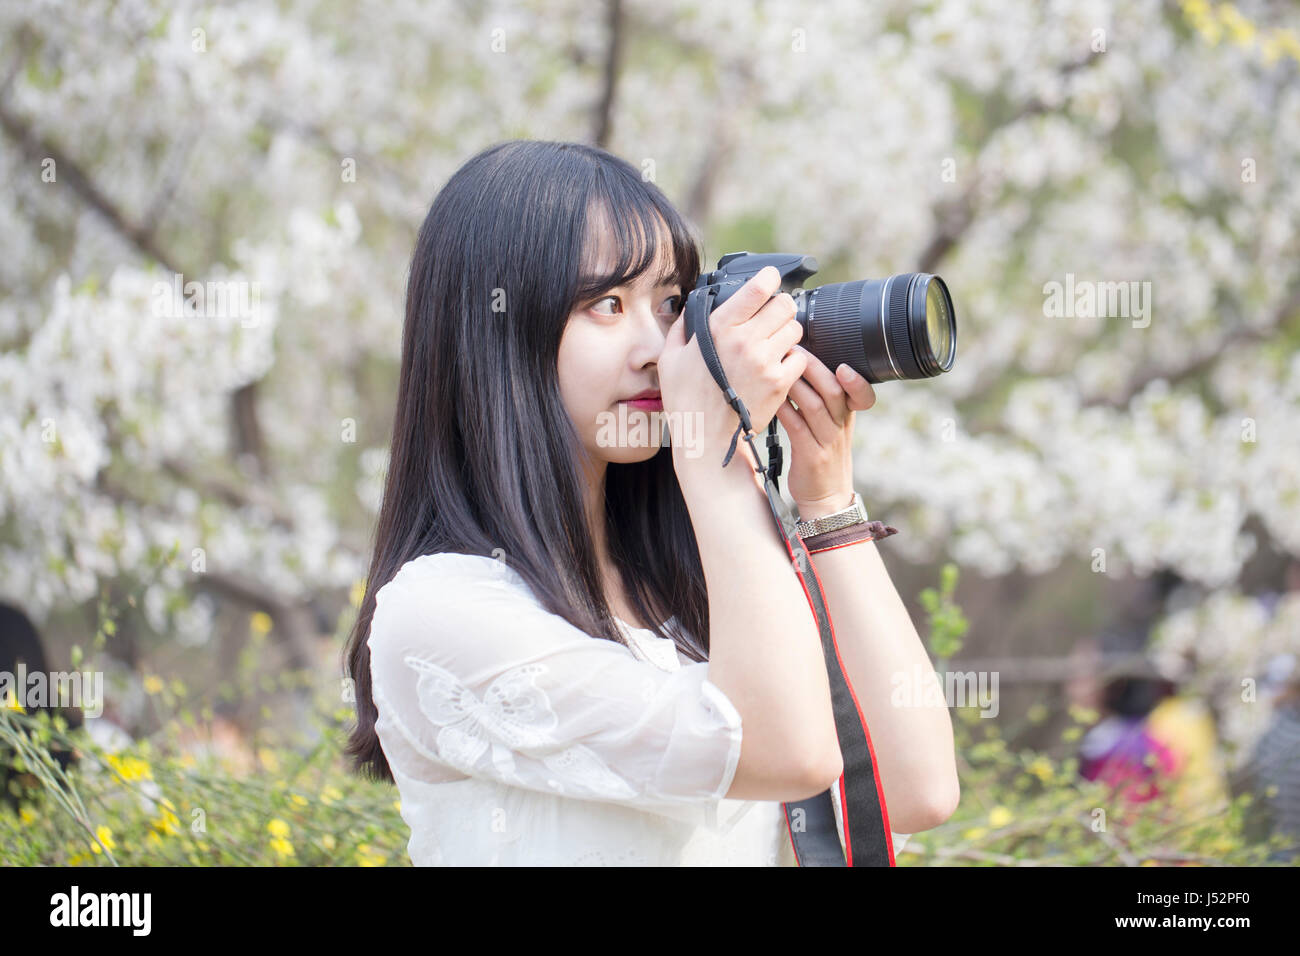 Pretty girl with DSLR camera - Stock Image